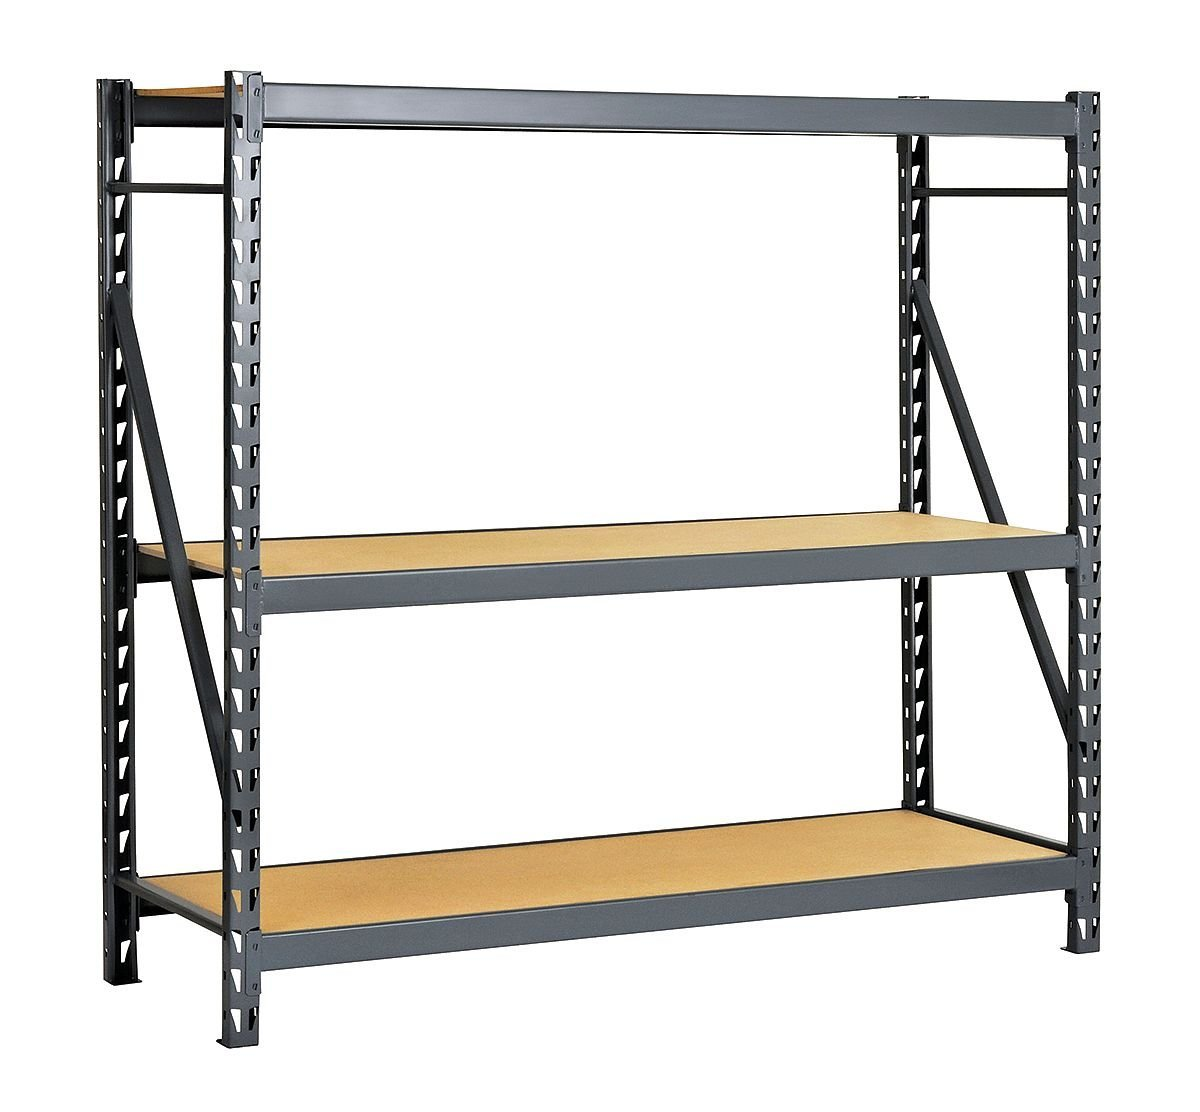 """Edsal ERP603672S E-RACK Bulk Storage Rack with Particle Board Decking, Starter Type, 3 Shelves, 3000 lb. Capacity, 60"""" W x 36"""" D x 72"""" H, Industrial Gray"""